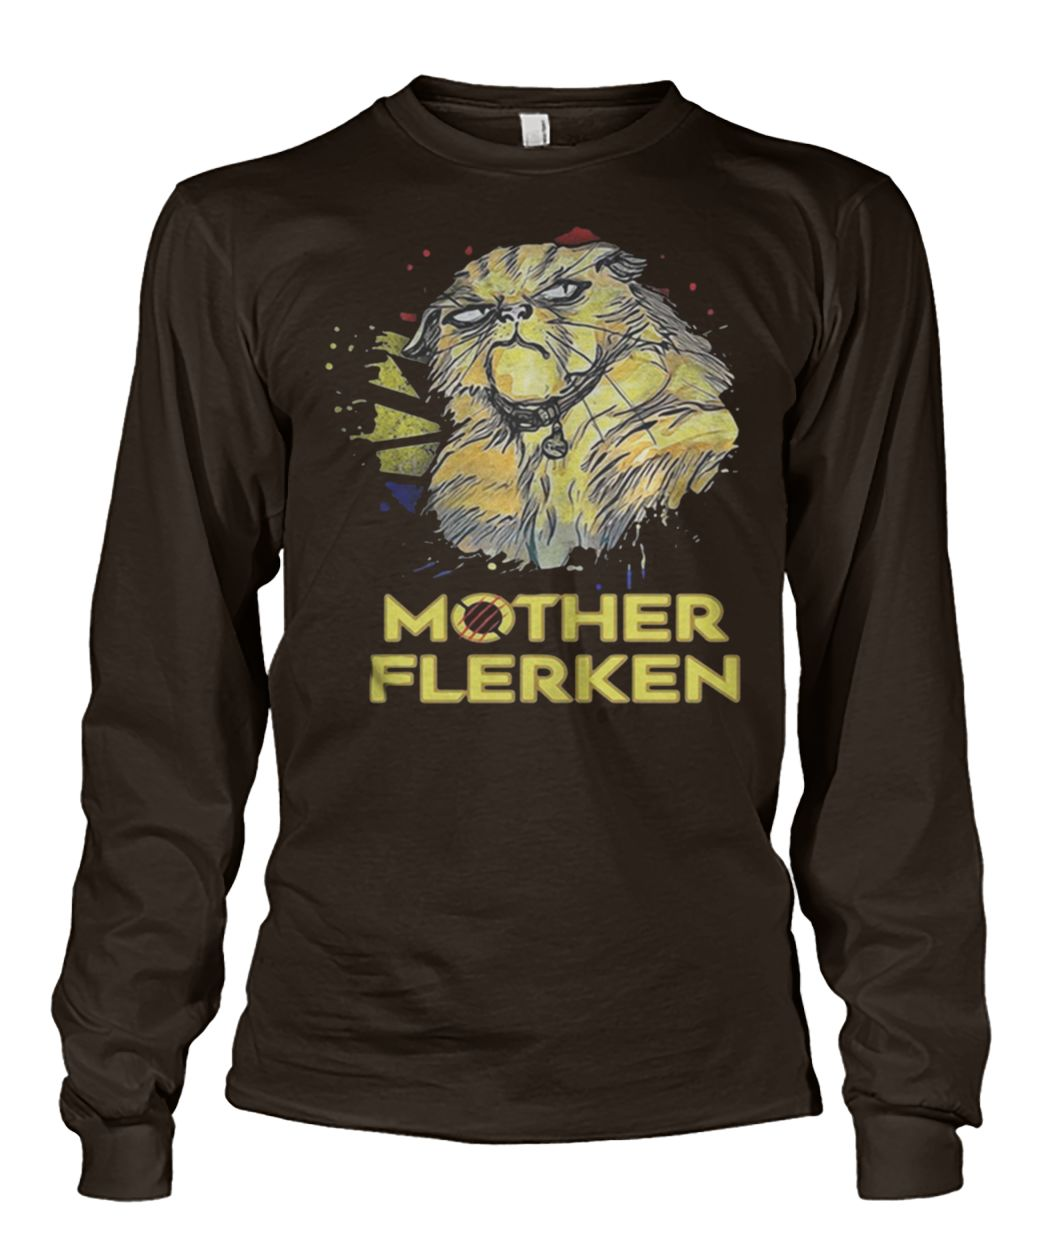 Captain marvel goose cat mother flerken unisex long sleeve